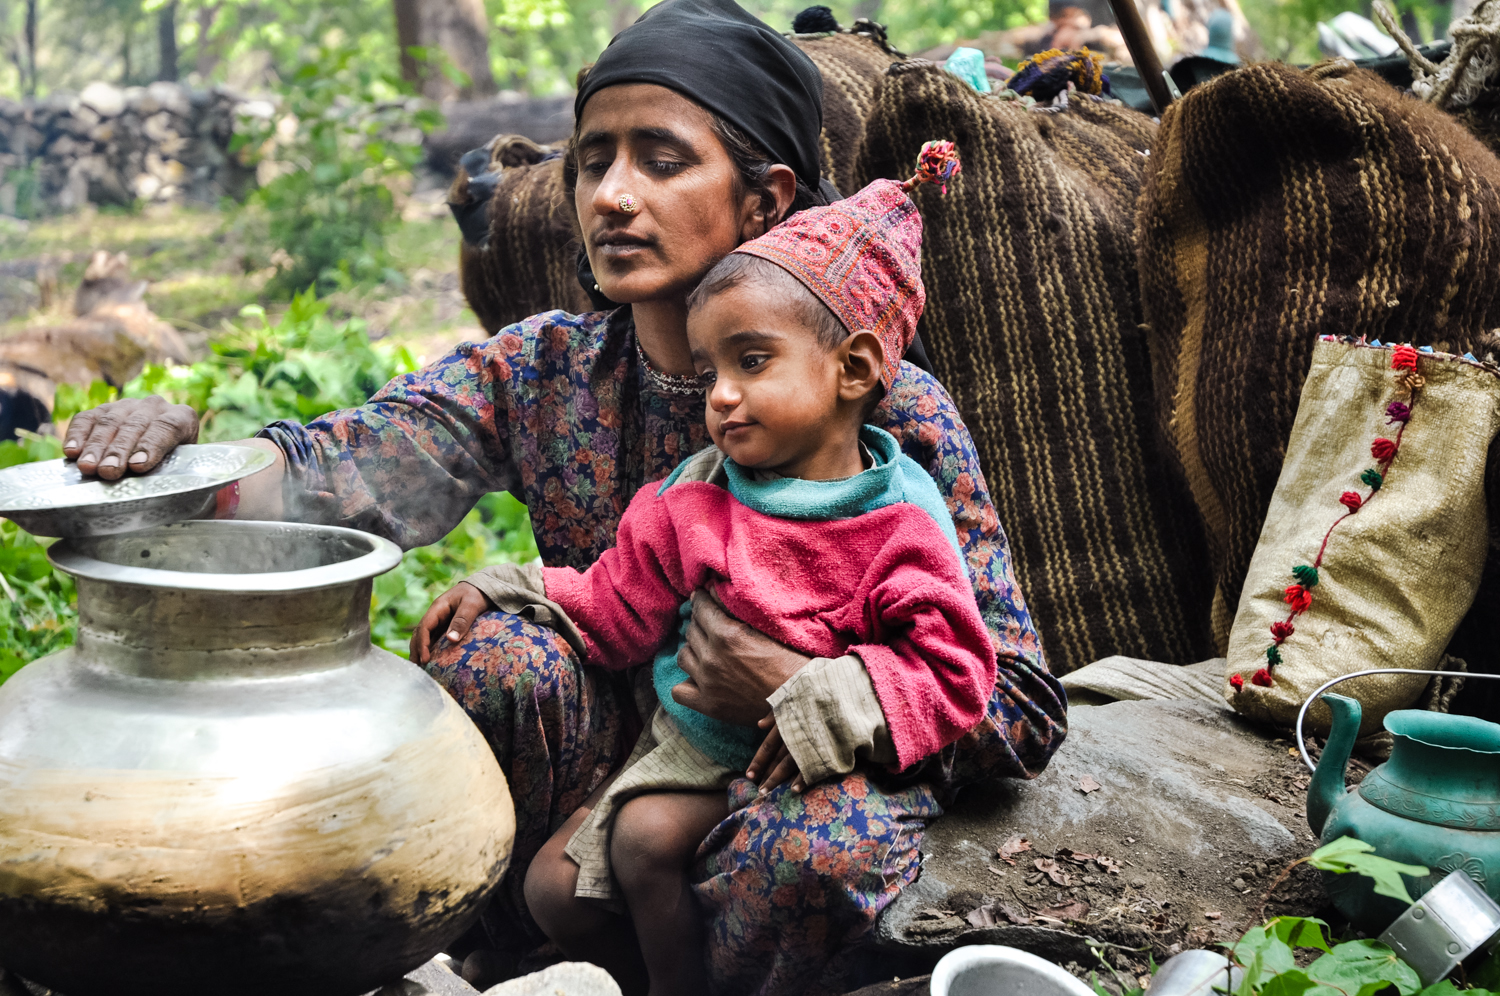 Jamila, with her 2-year-old son, Yasin, makes lunch along the trail.